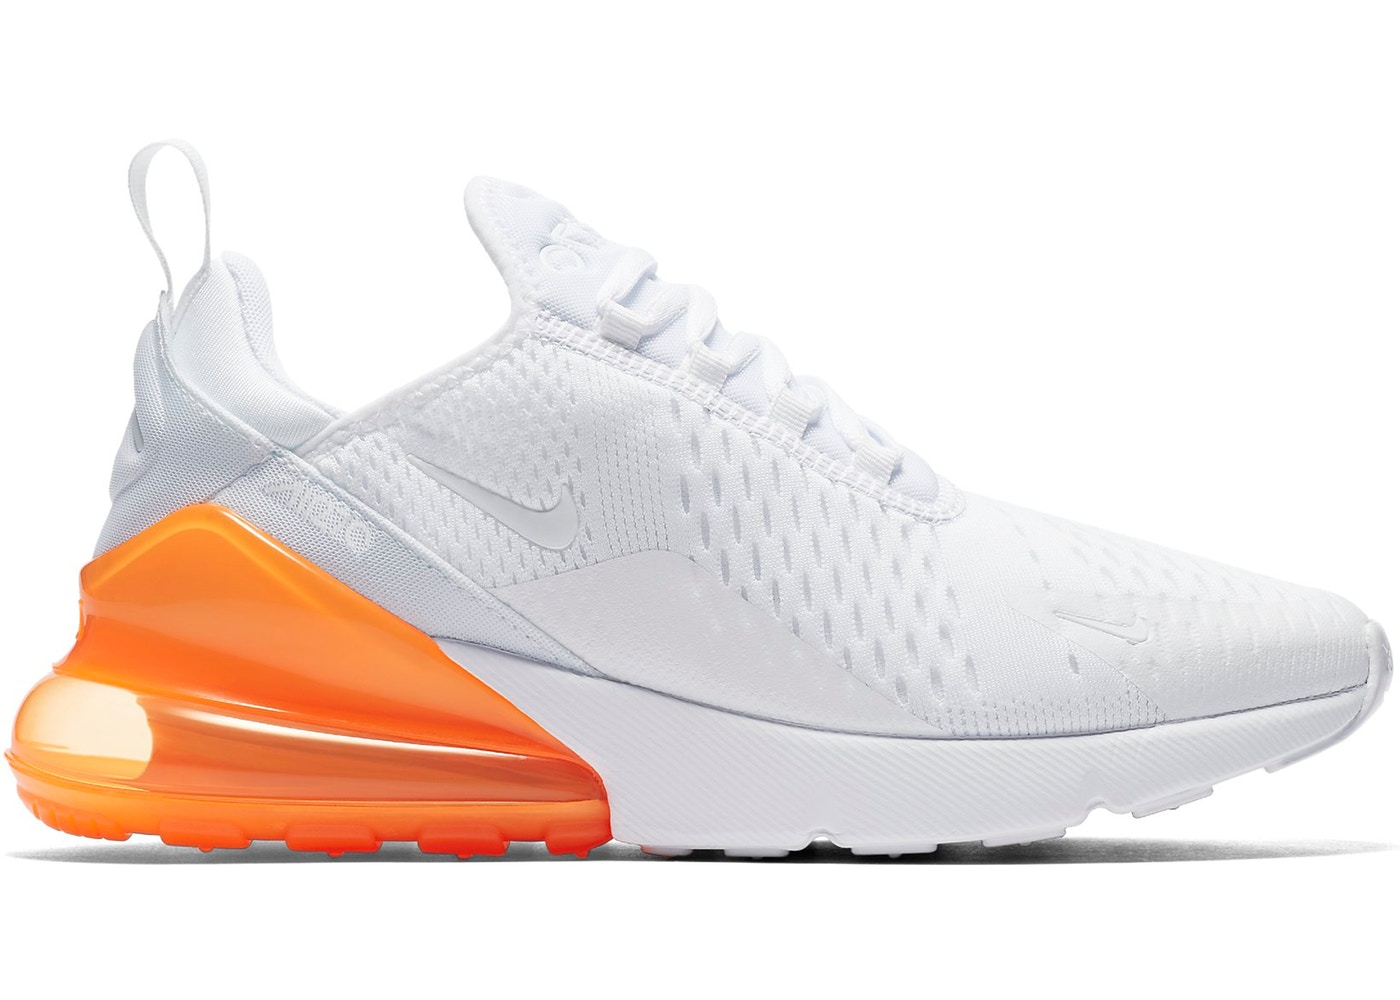 Nike Air Max 270 White Pack (Total Orange)